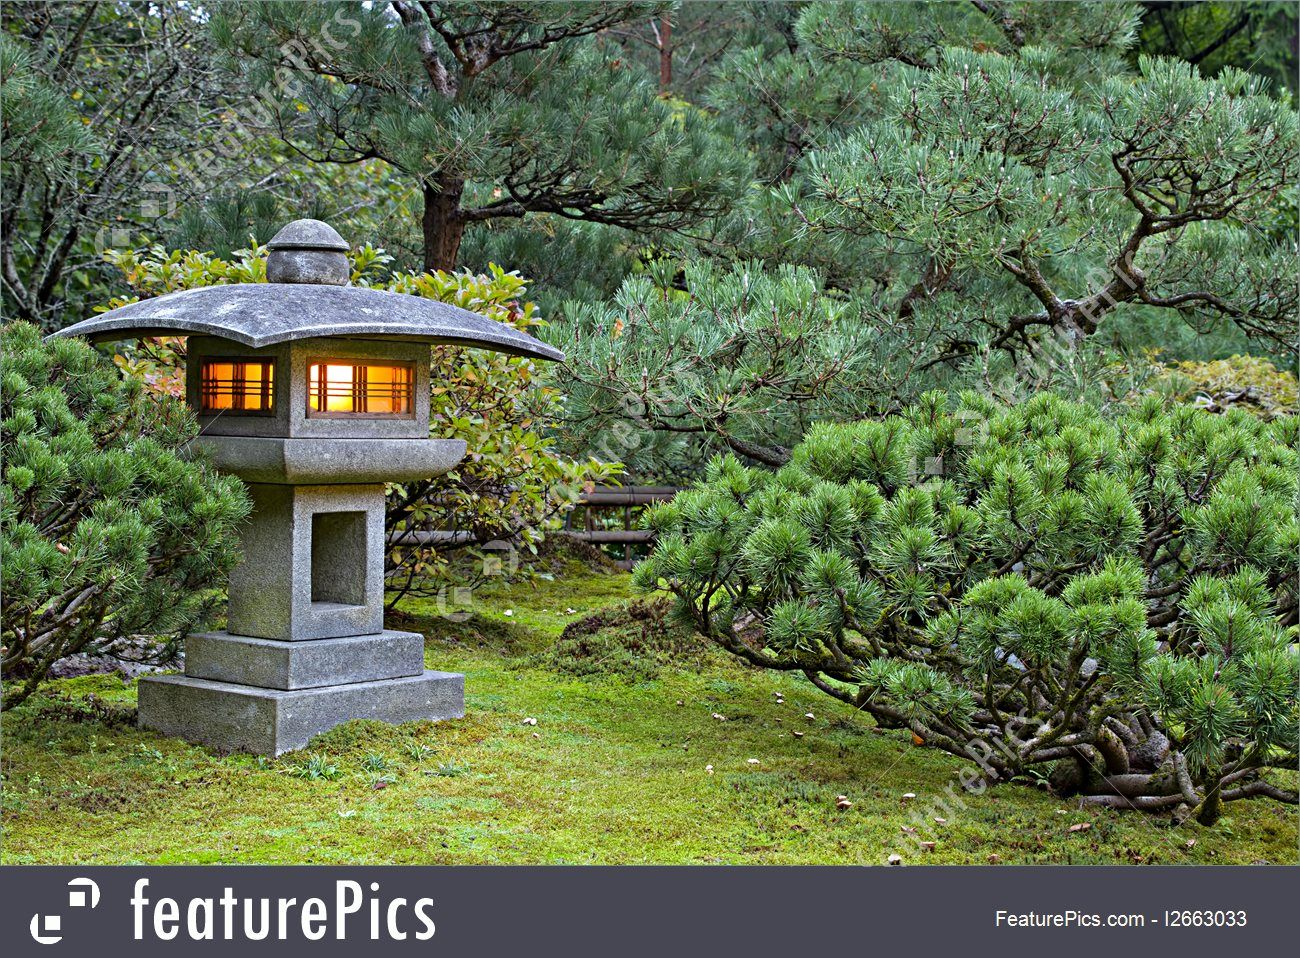 Stone Zen Garden Nature landscapes stone lantern at portland japanese garden lit at nature landscapes stone lantern at portland japanese garden lit at dawn workwithnaturefo